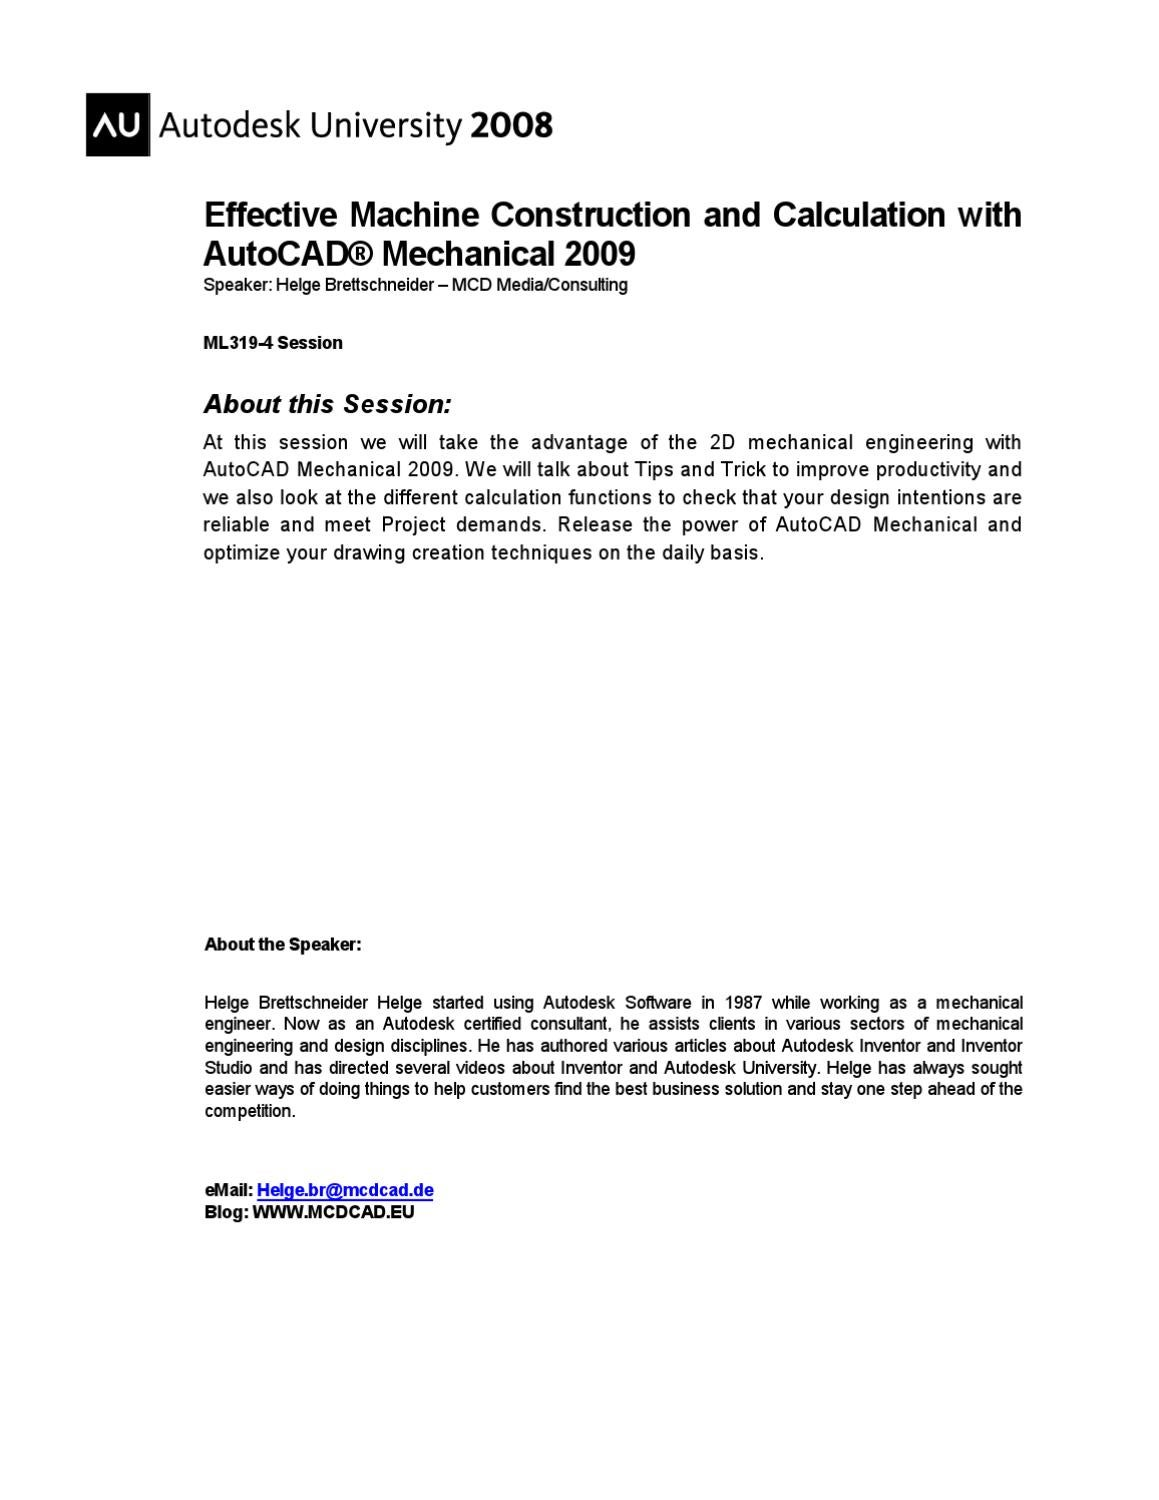 Effective Machine Construction and Calculation with AutoCAD